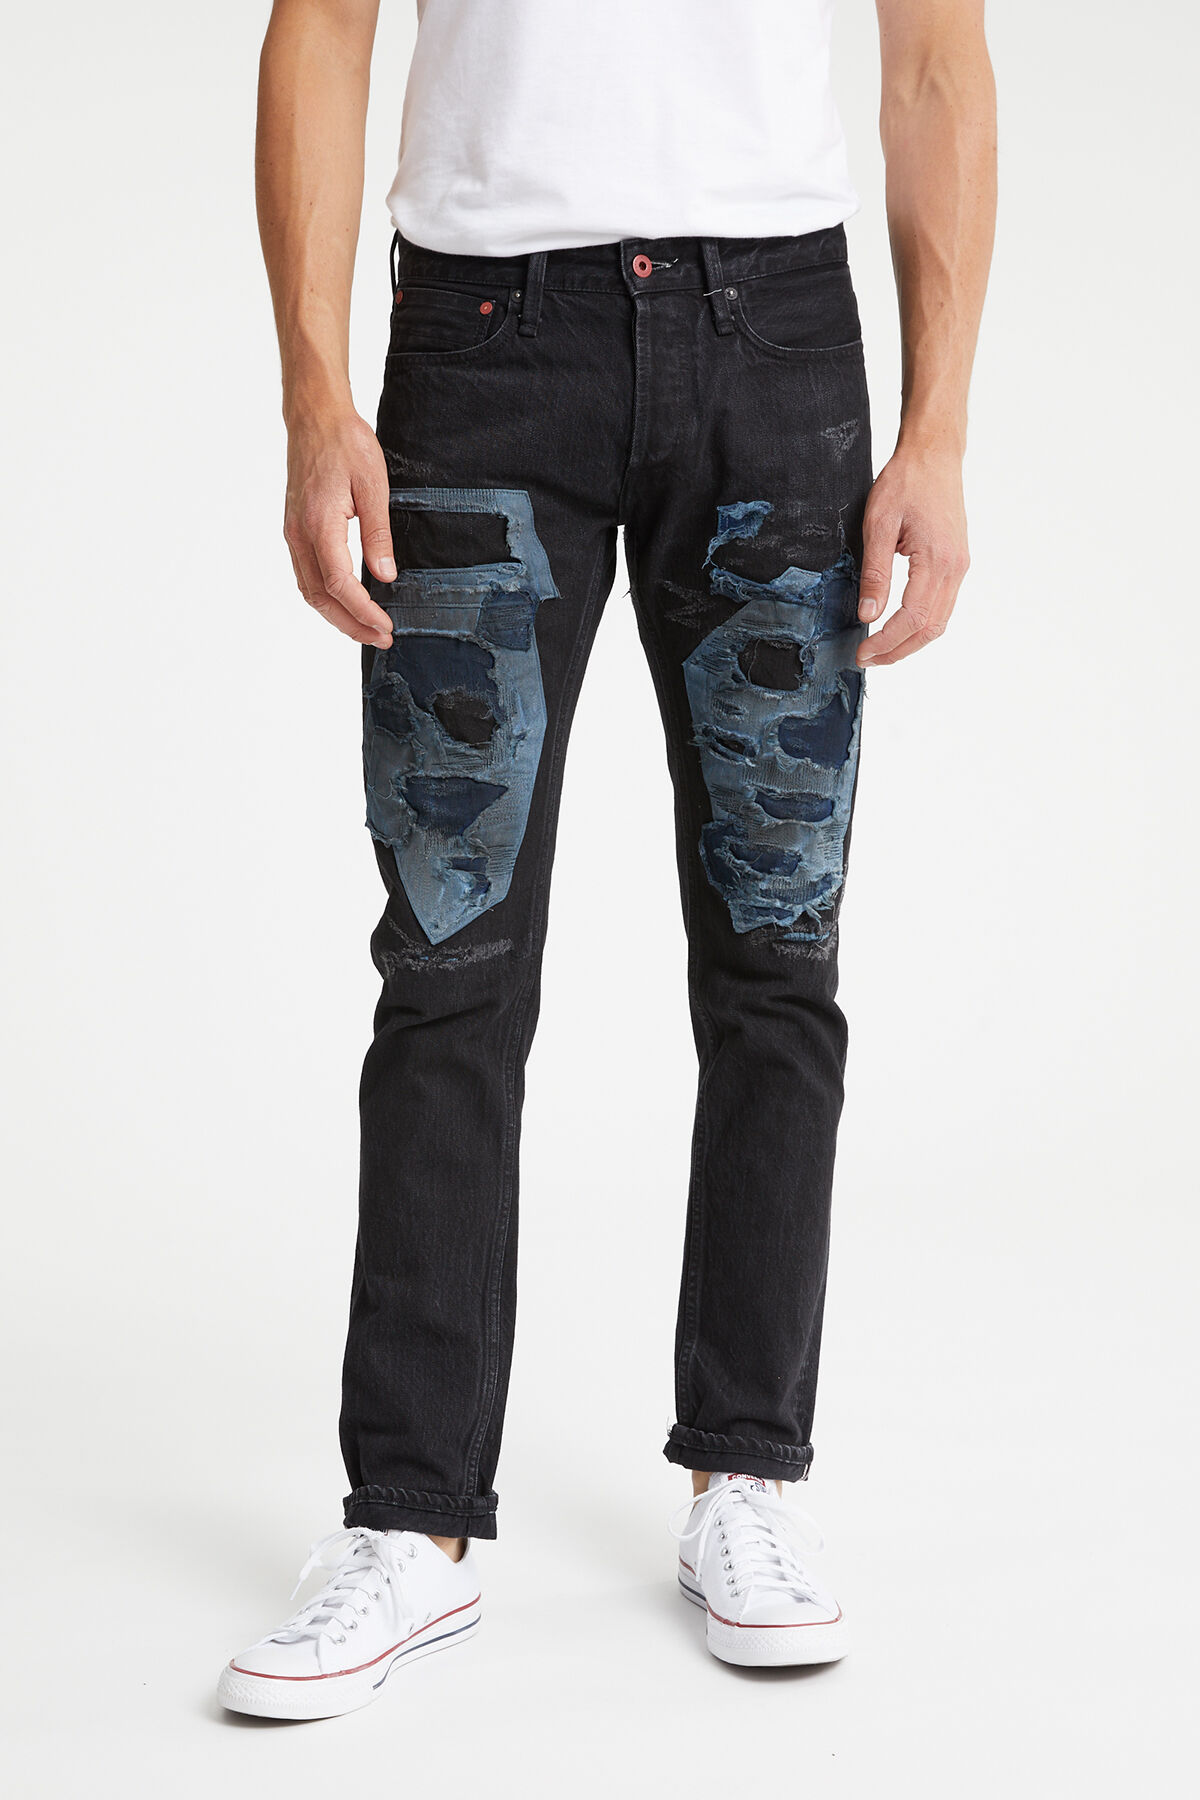 RAZOR Black Repaired Selvedge Denim - Slim Fit